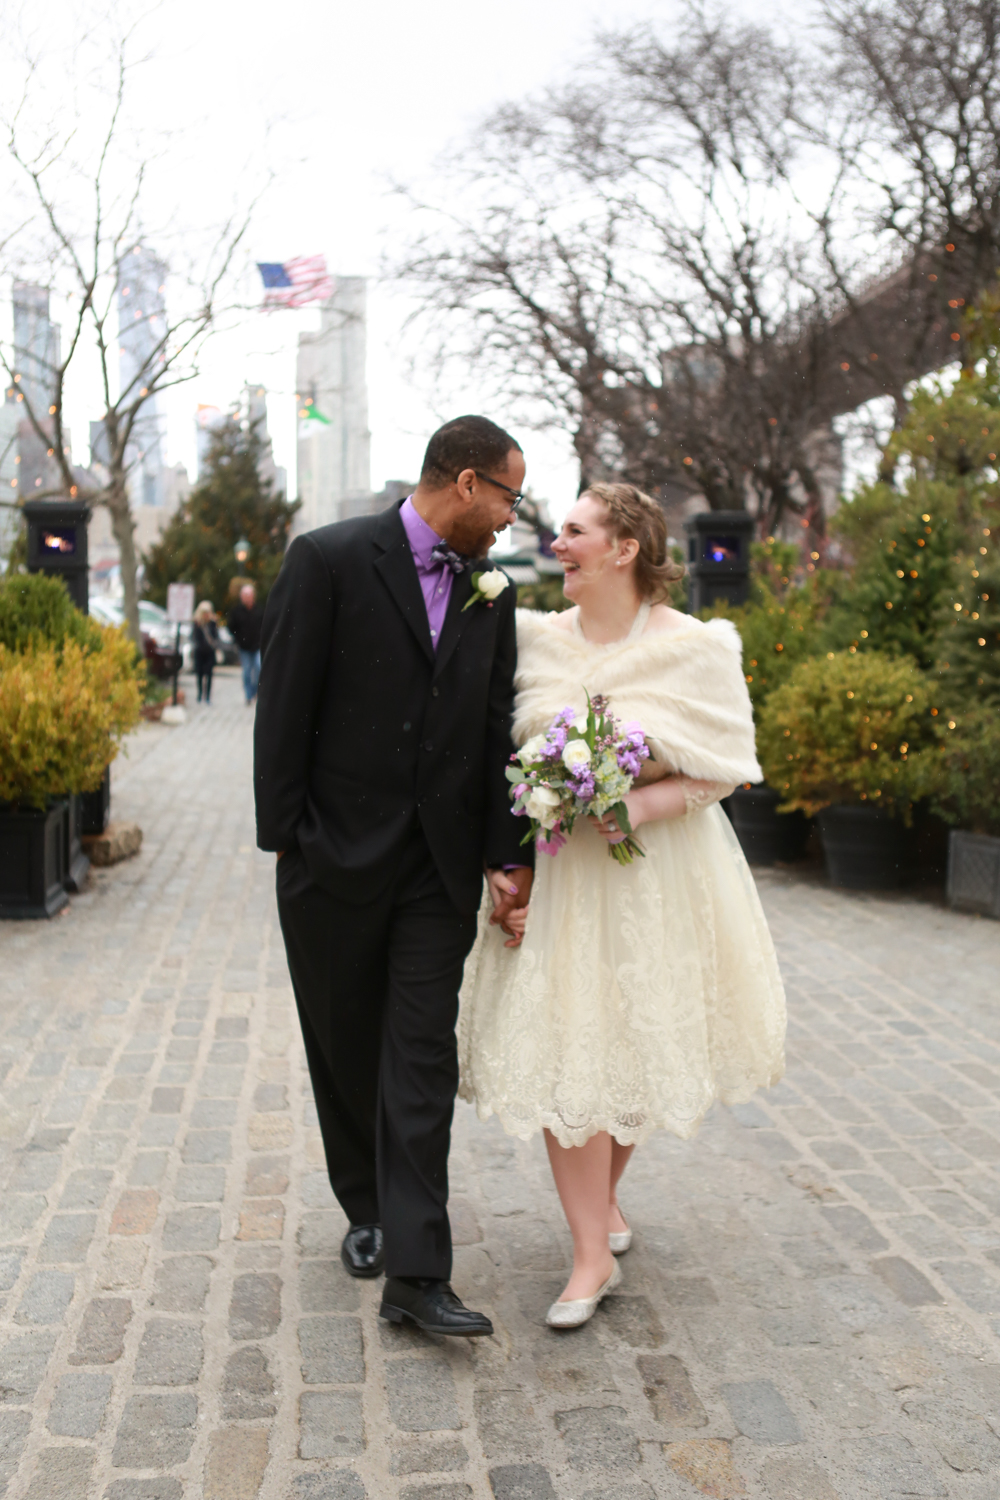 Bride and groom walking through NYC